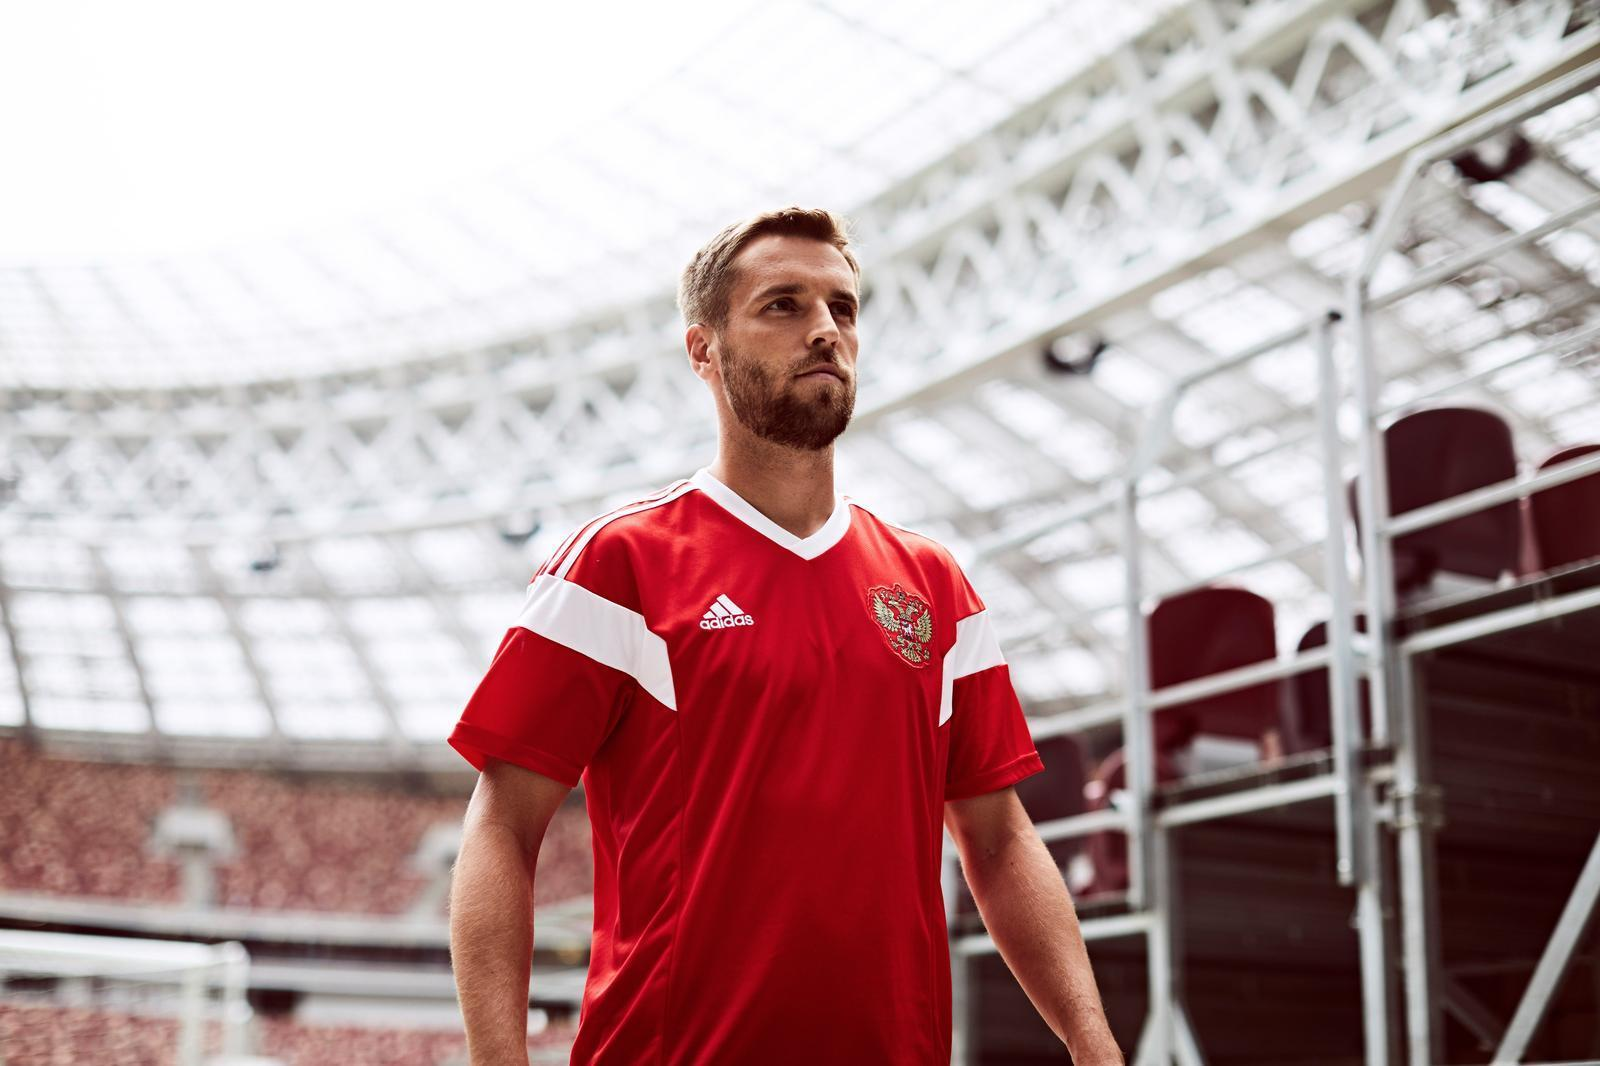 russia-2018-world-cup-kit-1.jpg